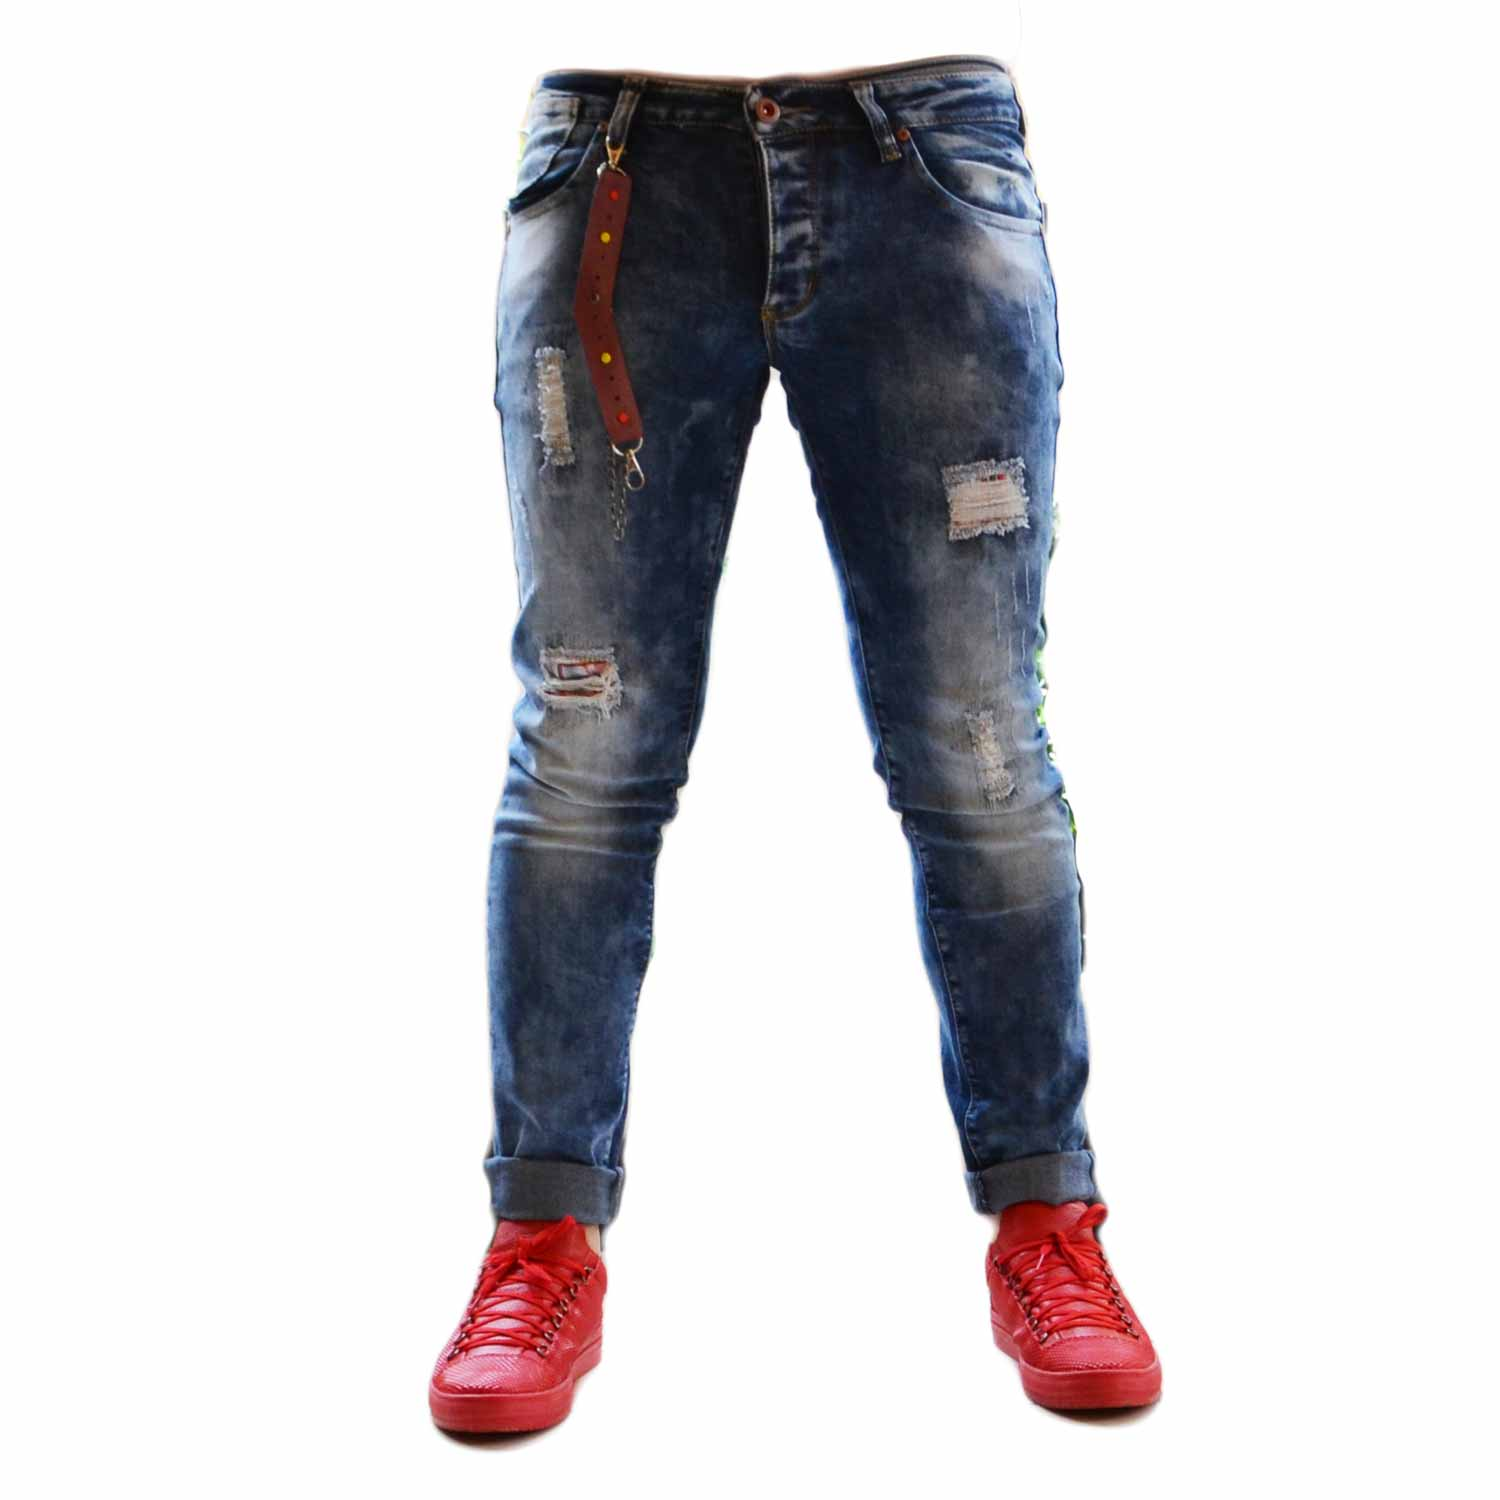 Jeans slim denimlavaggio graduale accessorio bicolore made in italy man .